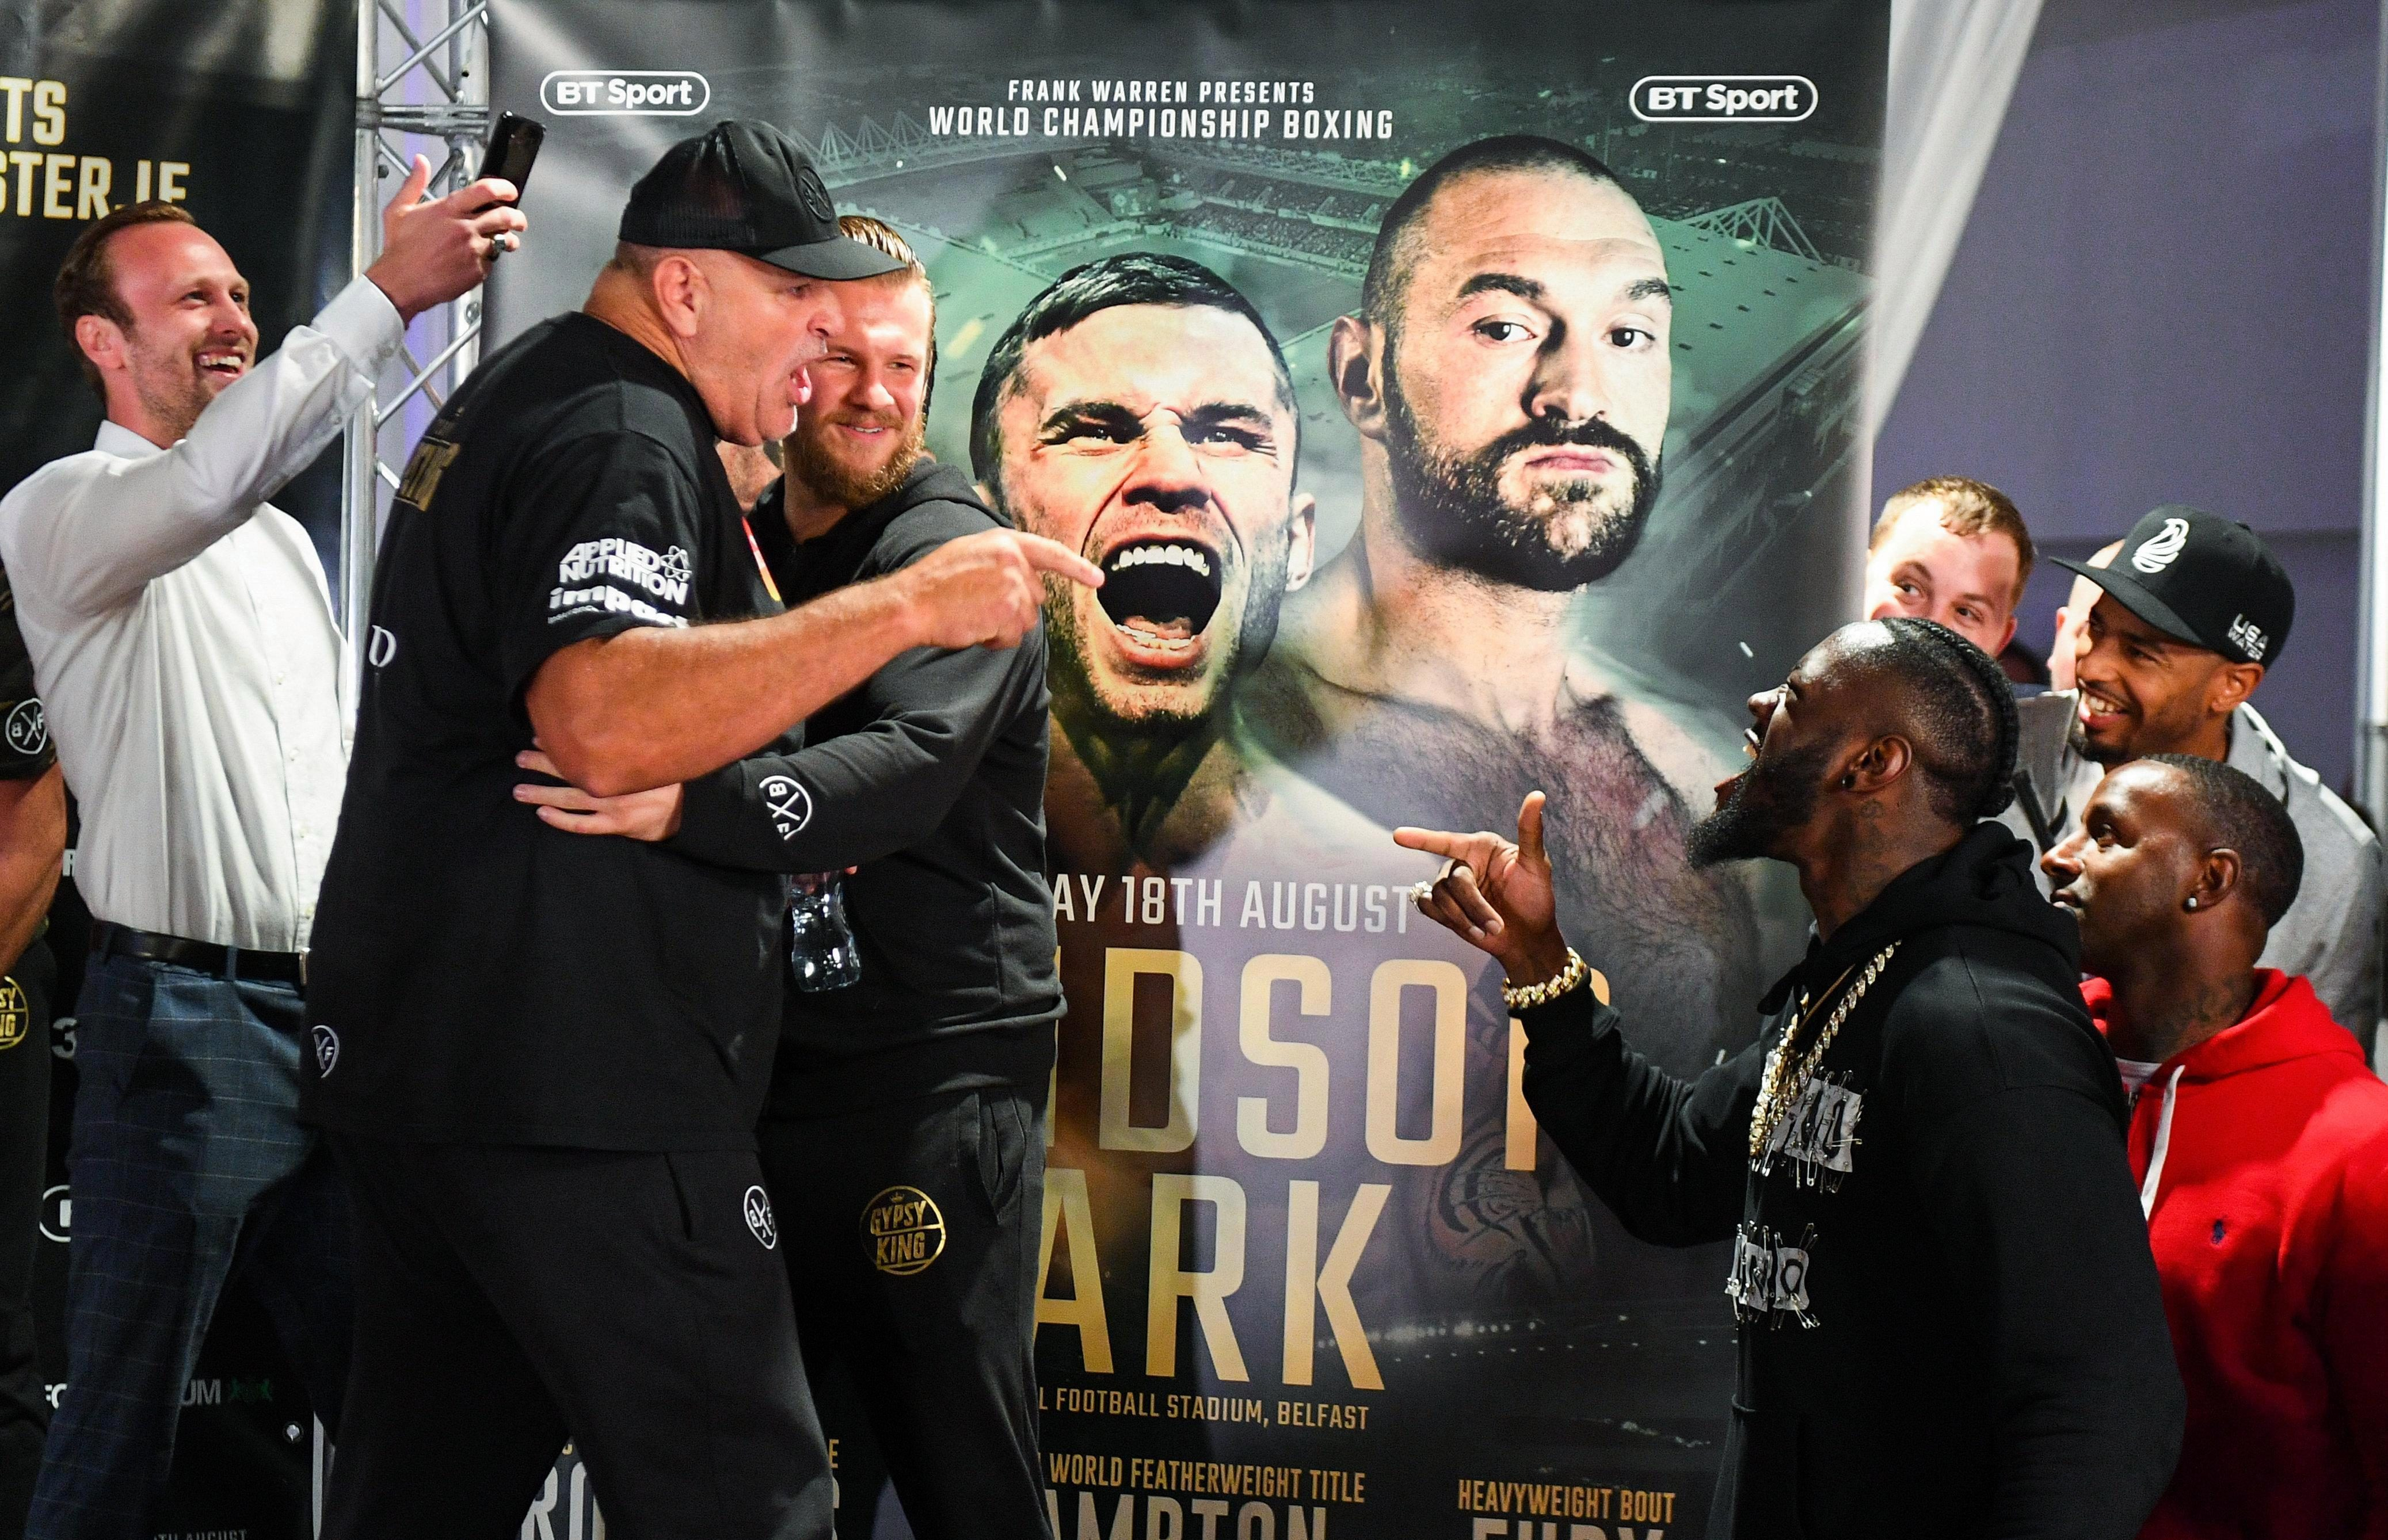 John Fury and Deontay Wilder clashed in Belfast at Tyson Fury's weigh-in